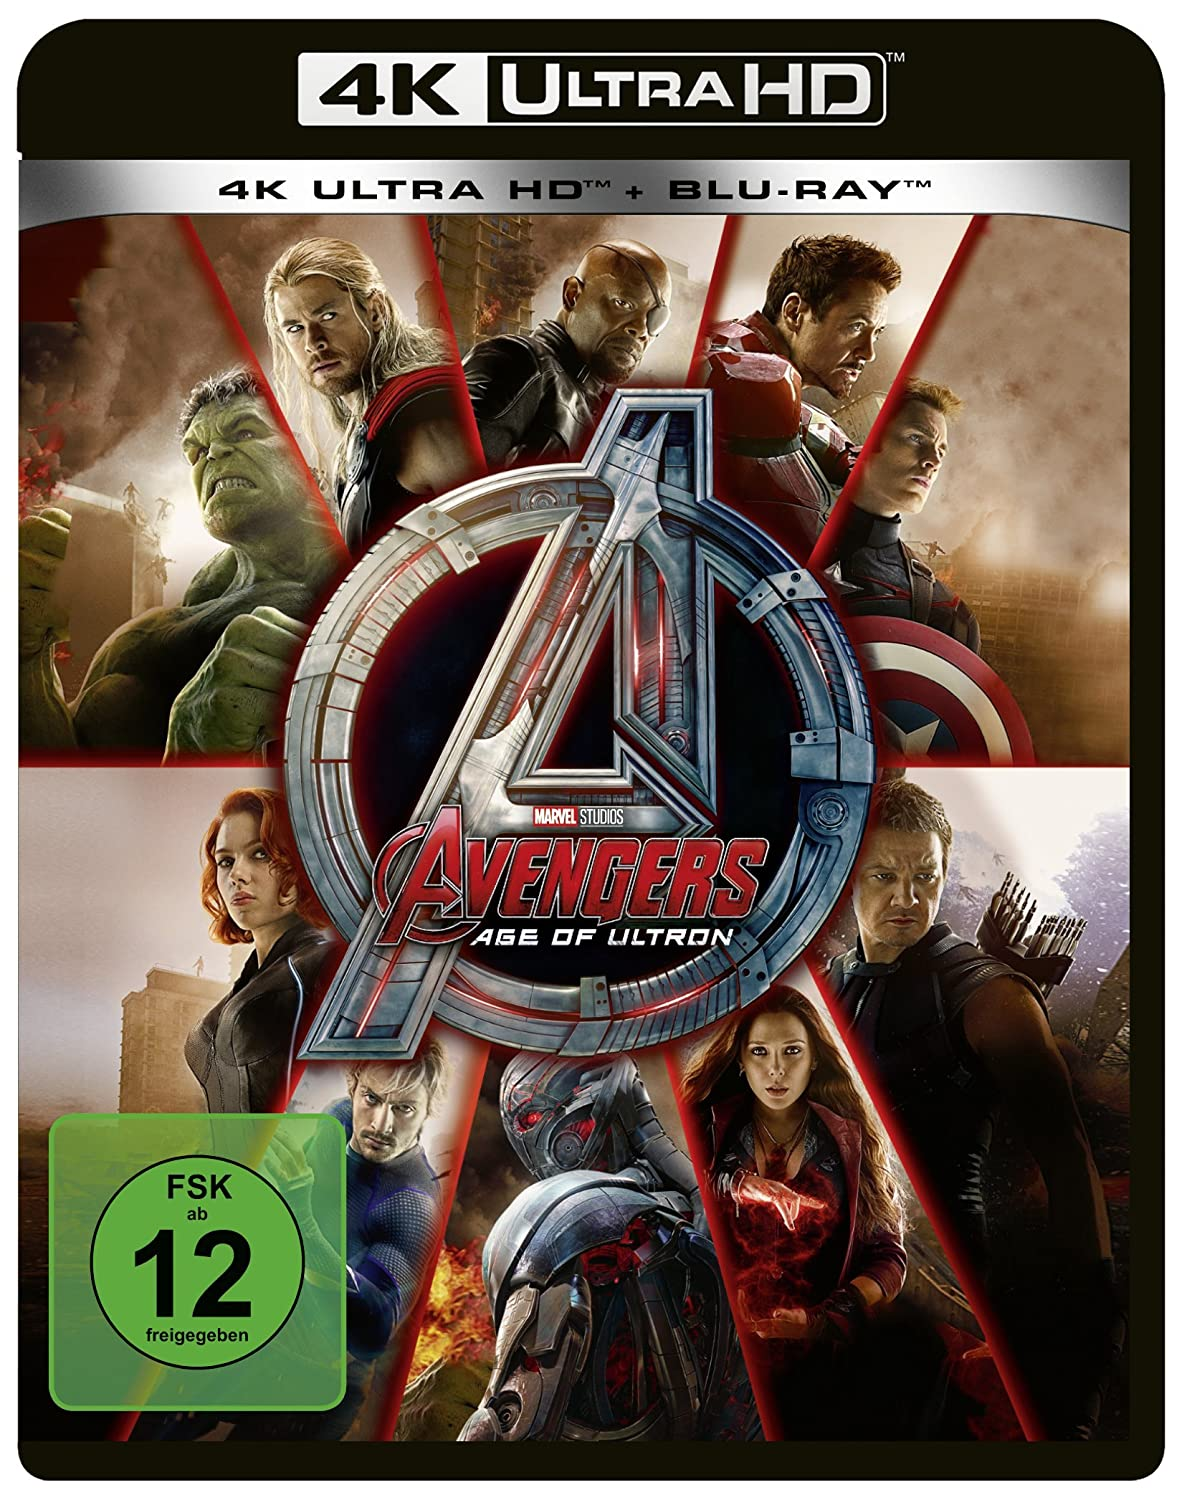 Marvels The Avengers - Age of Ultron 4K Ultra HD + Blu-ray 2D ...